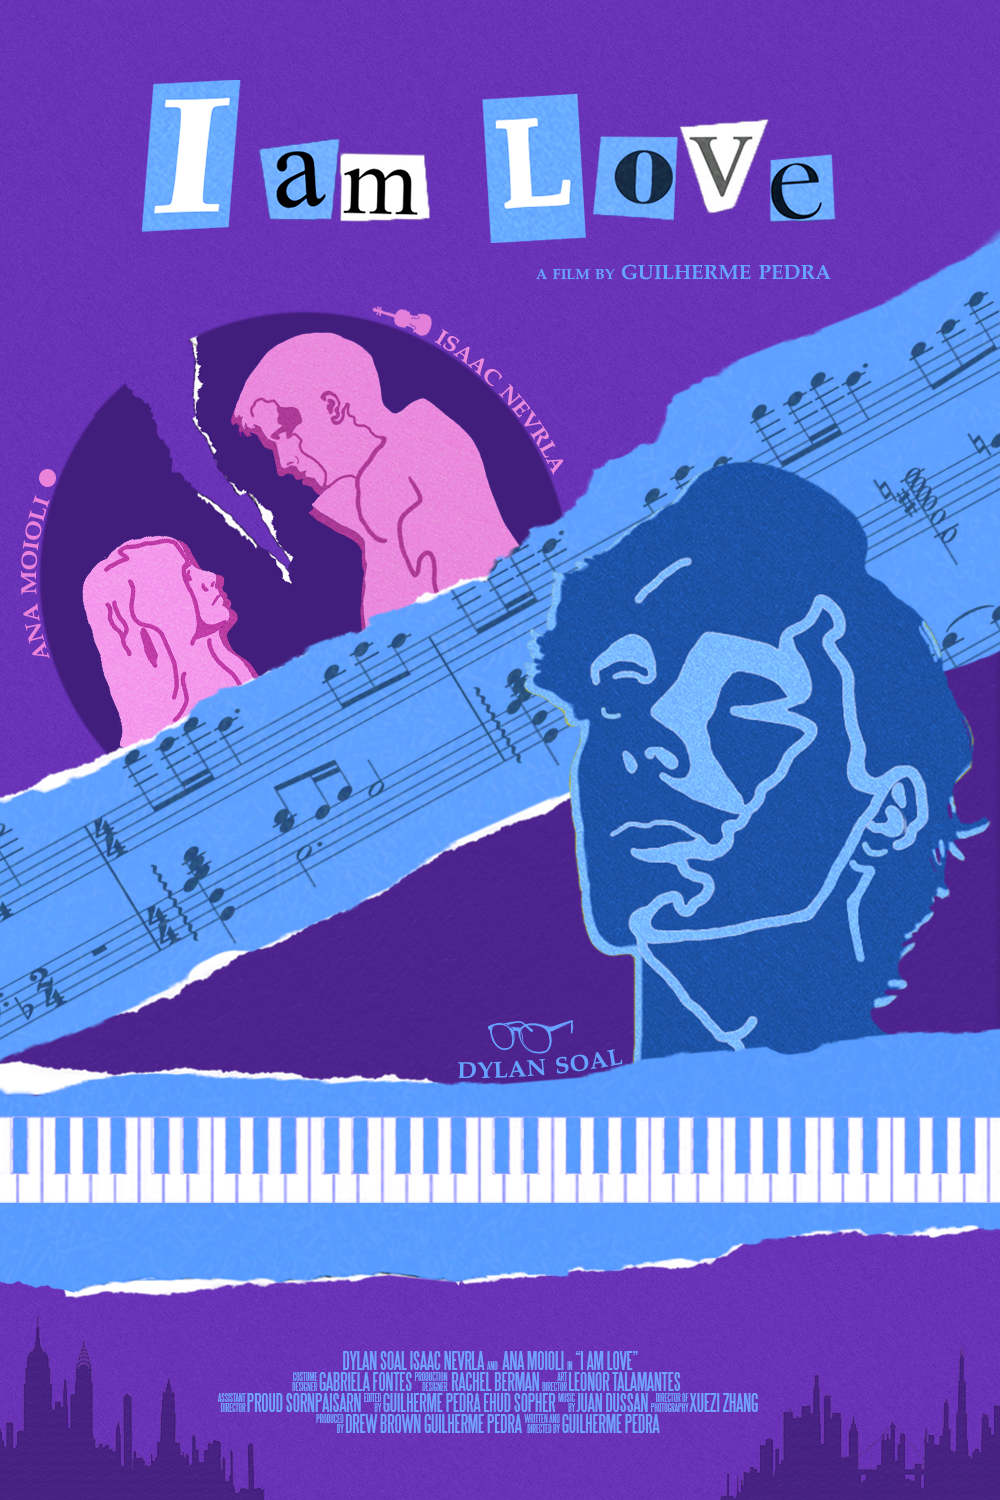 A poster with an artistic design showing a collage/scrapbook style design of Arthur's character's torn devotion to both Theo and Luna. Strips across the poster showcasing the film's musical motifs with a piano keyboard, another with musical notes.